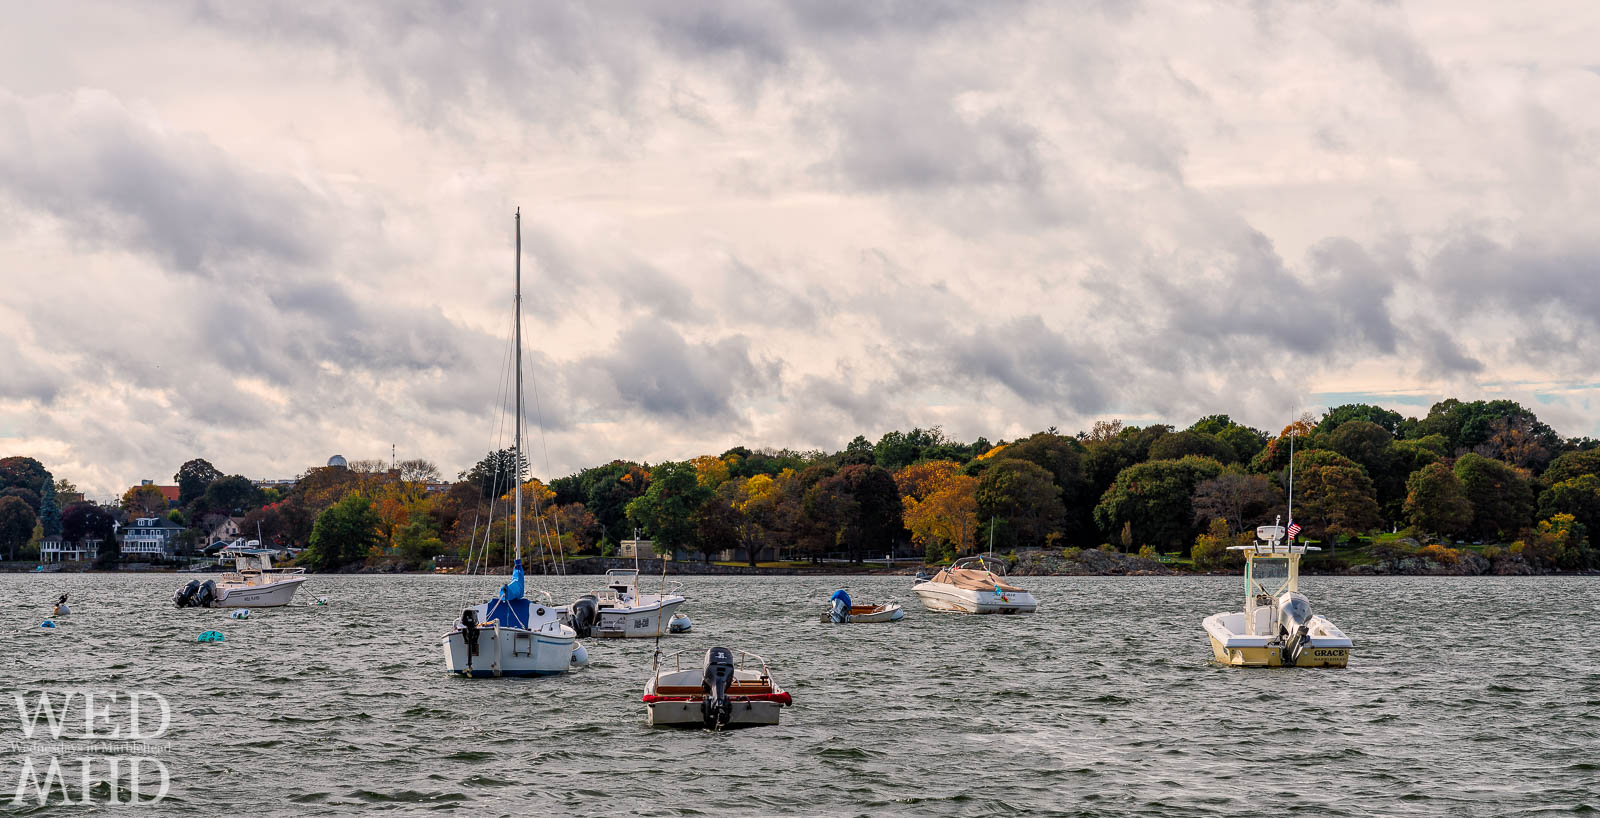 Fall color can be seen across Salem Harbor with boats still moored in the waters as autumn begins to take shape in Marblehead